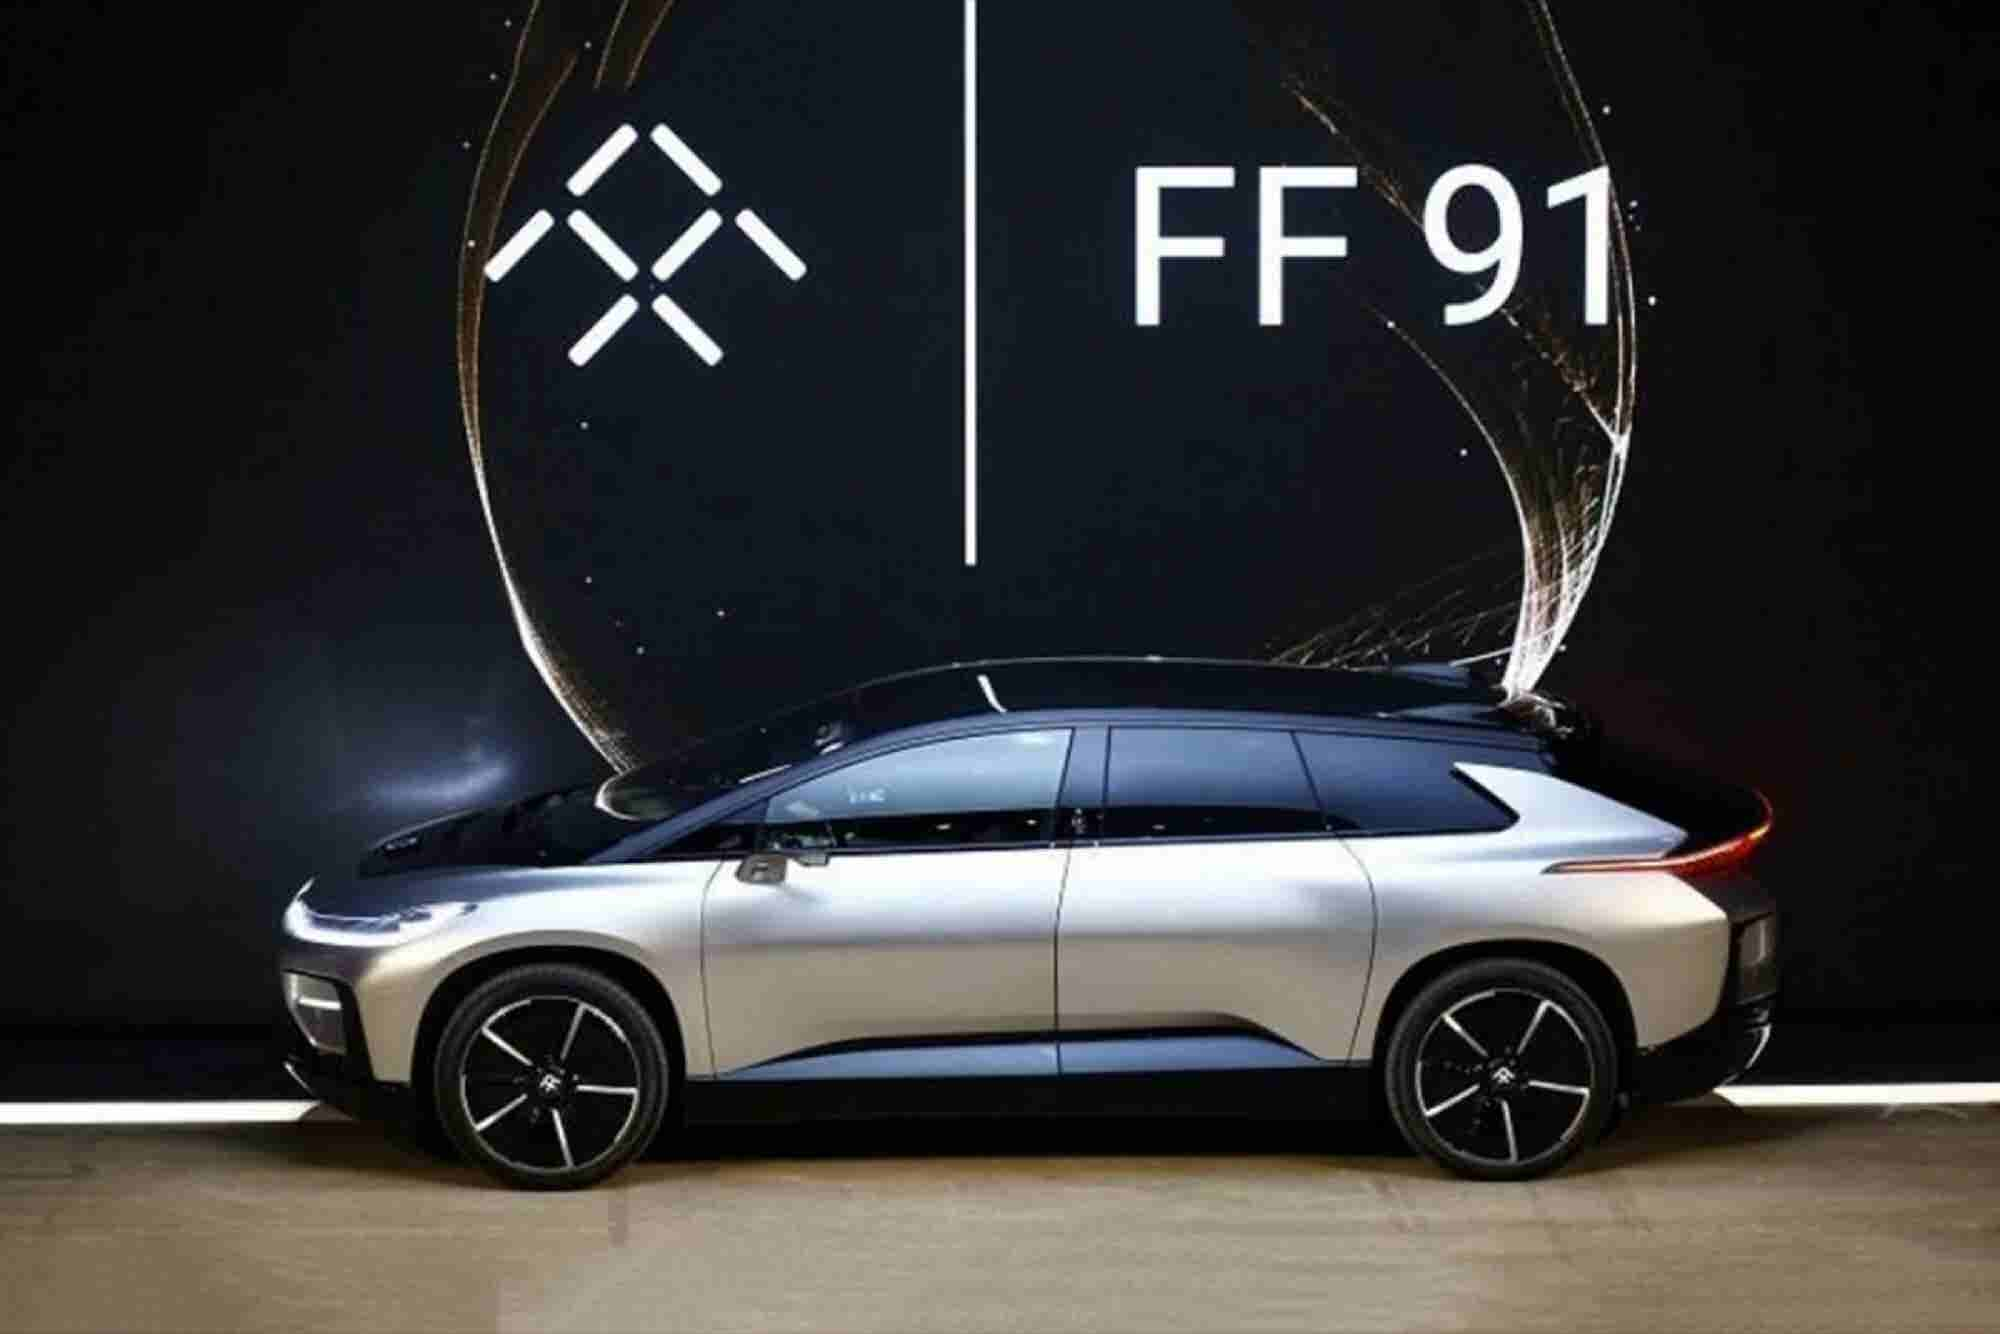 Faraday Future: Car Maker, Hype Machine or Both?